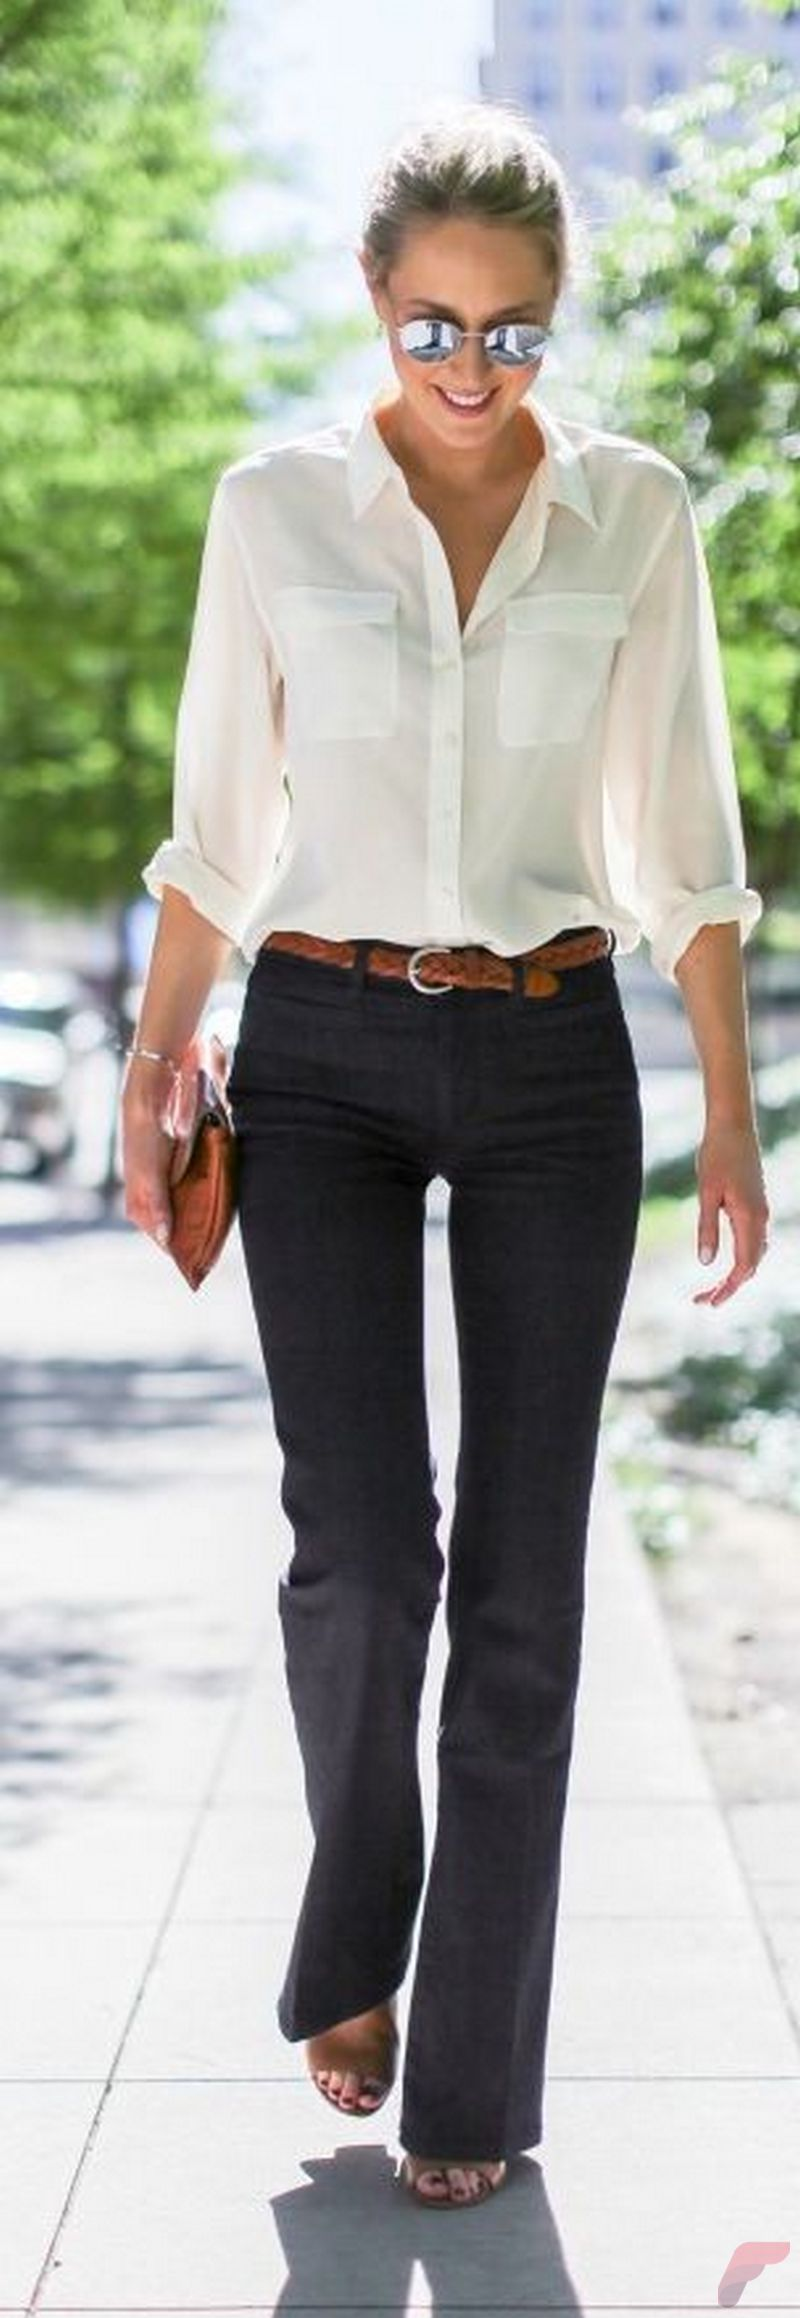 Women white shirt for work (234)